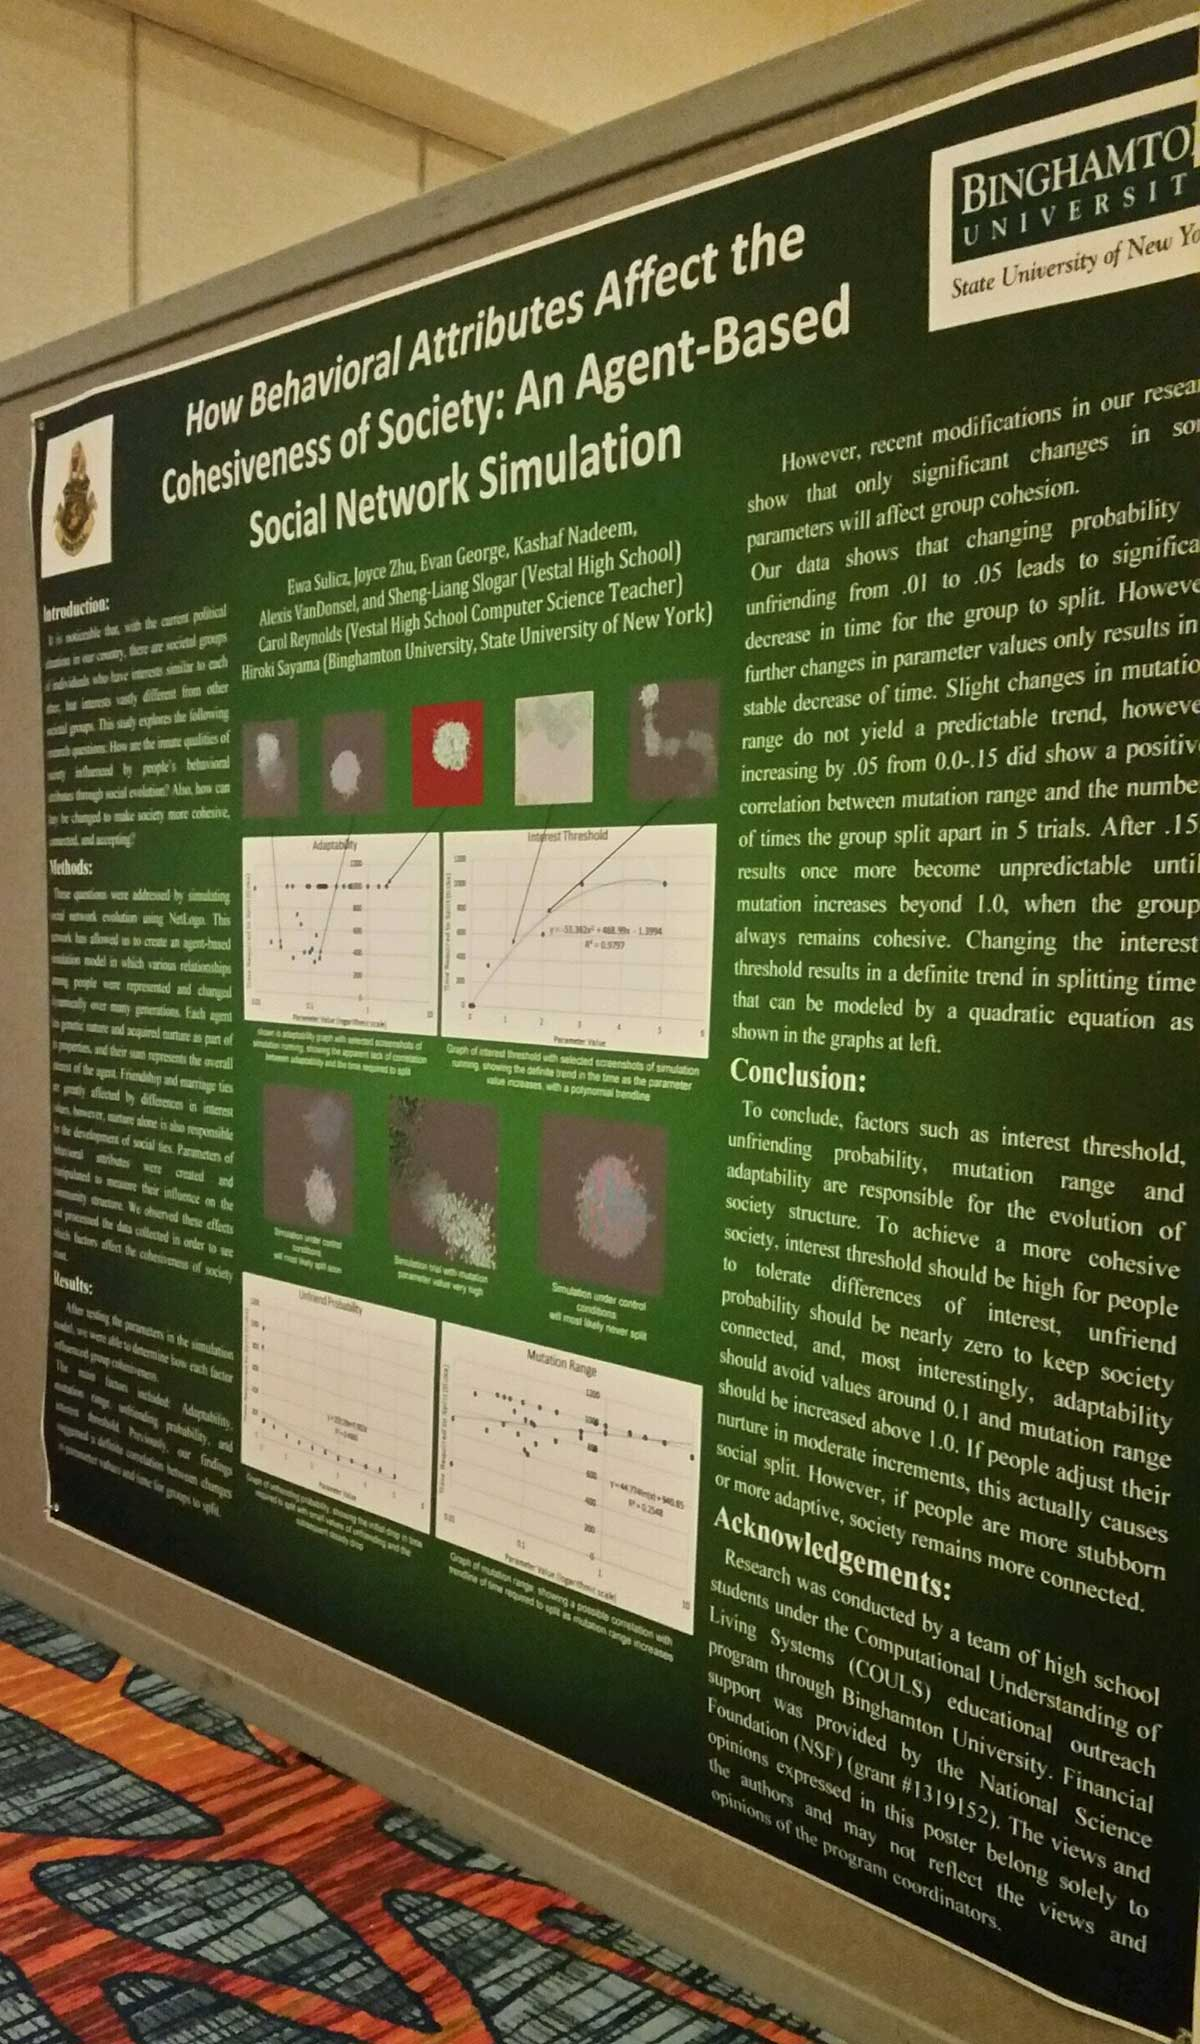 Vestal High School students used simulation to investigate community evolution and presented their findings at a national conference. They were the only high schoolers invited to present.